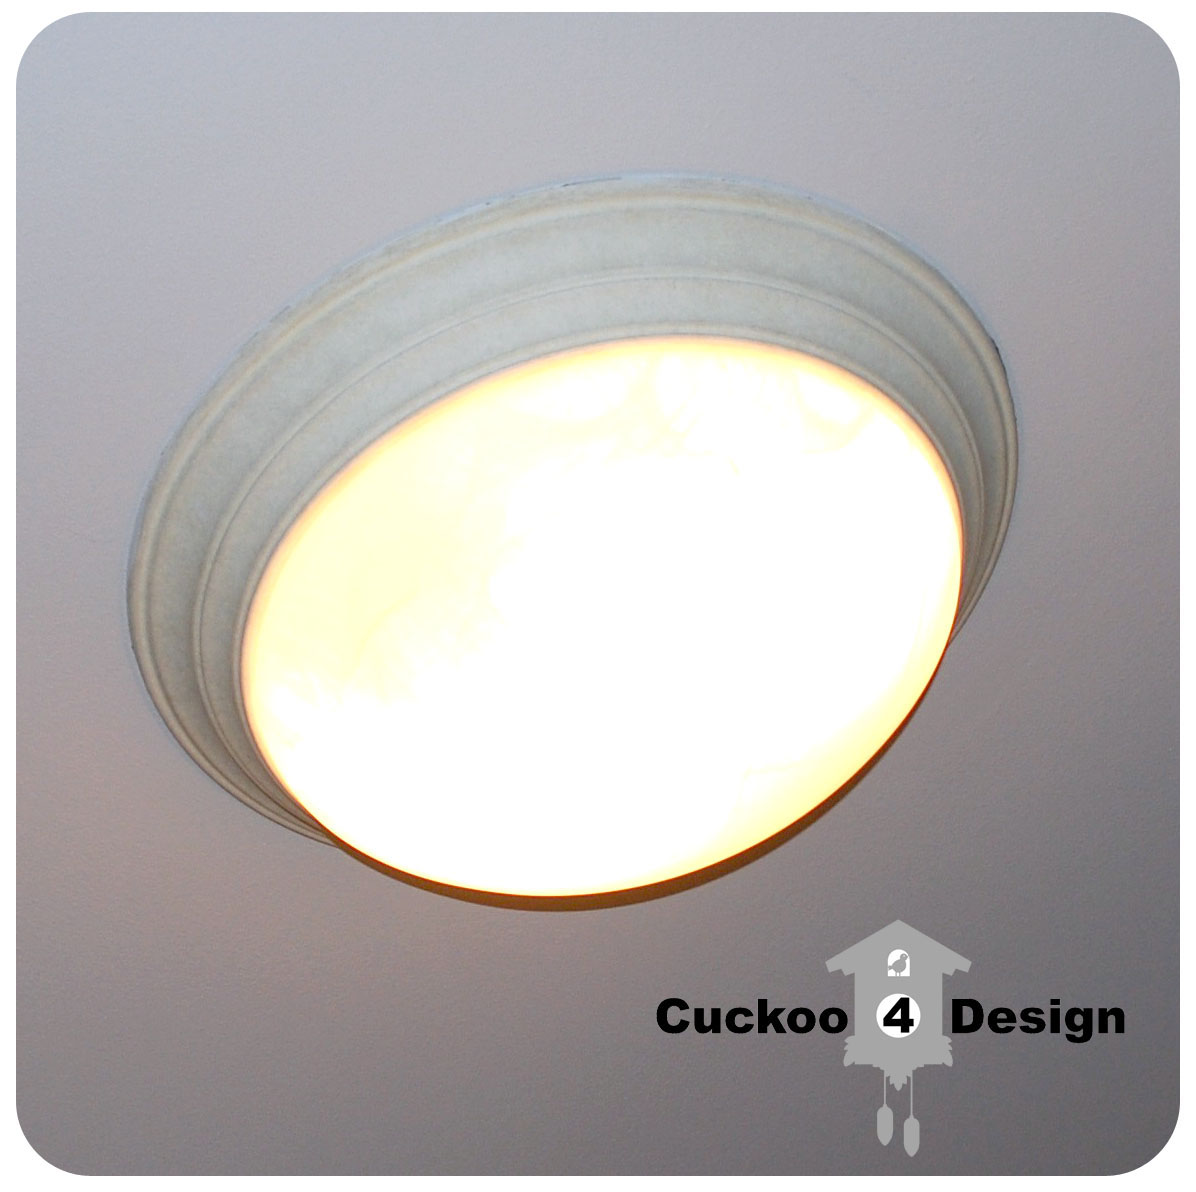 Homegoods clearance bowl as diy ceiling fixture cuckoo4design ugly standard builders ceiling fixture aloadofball Choice Image